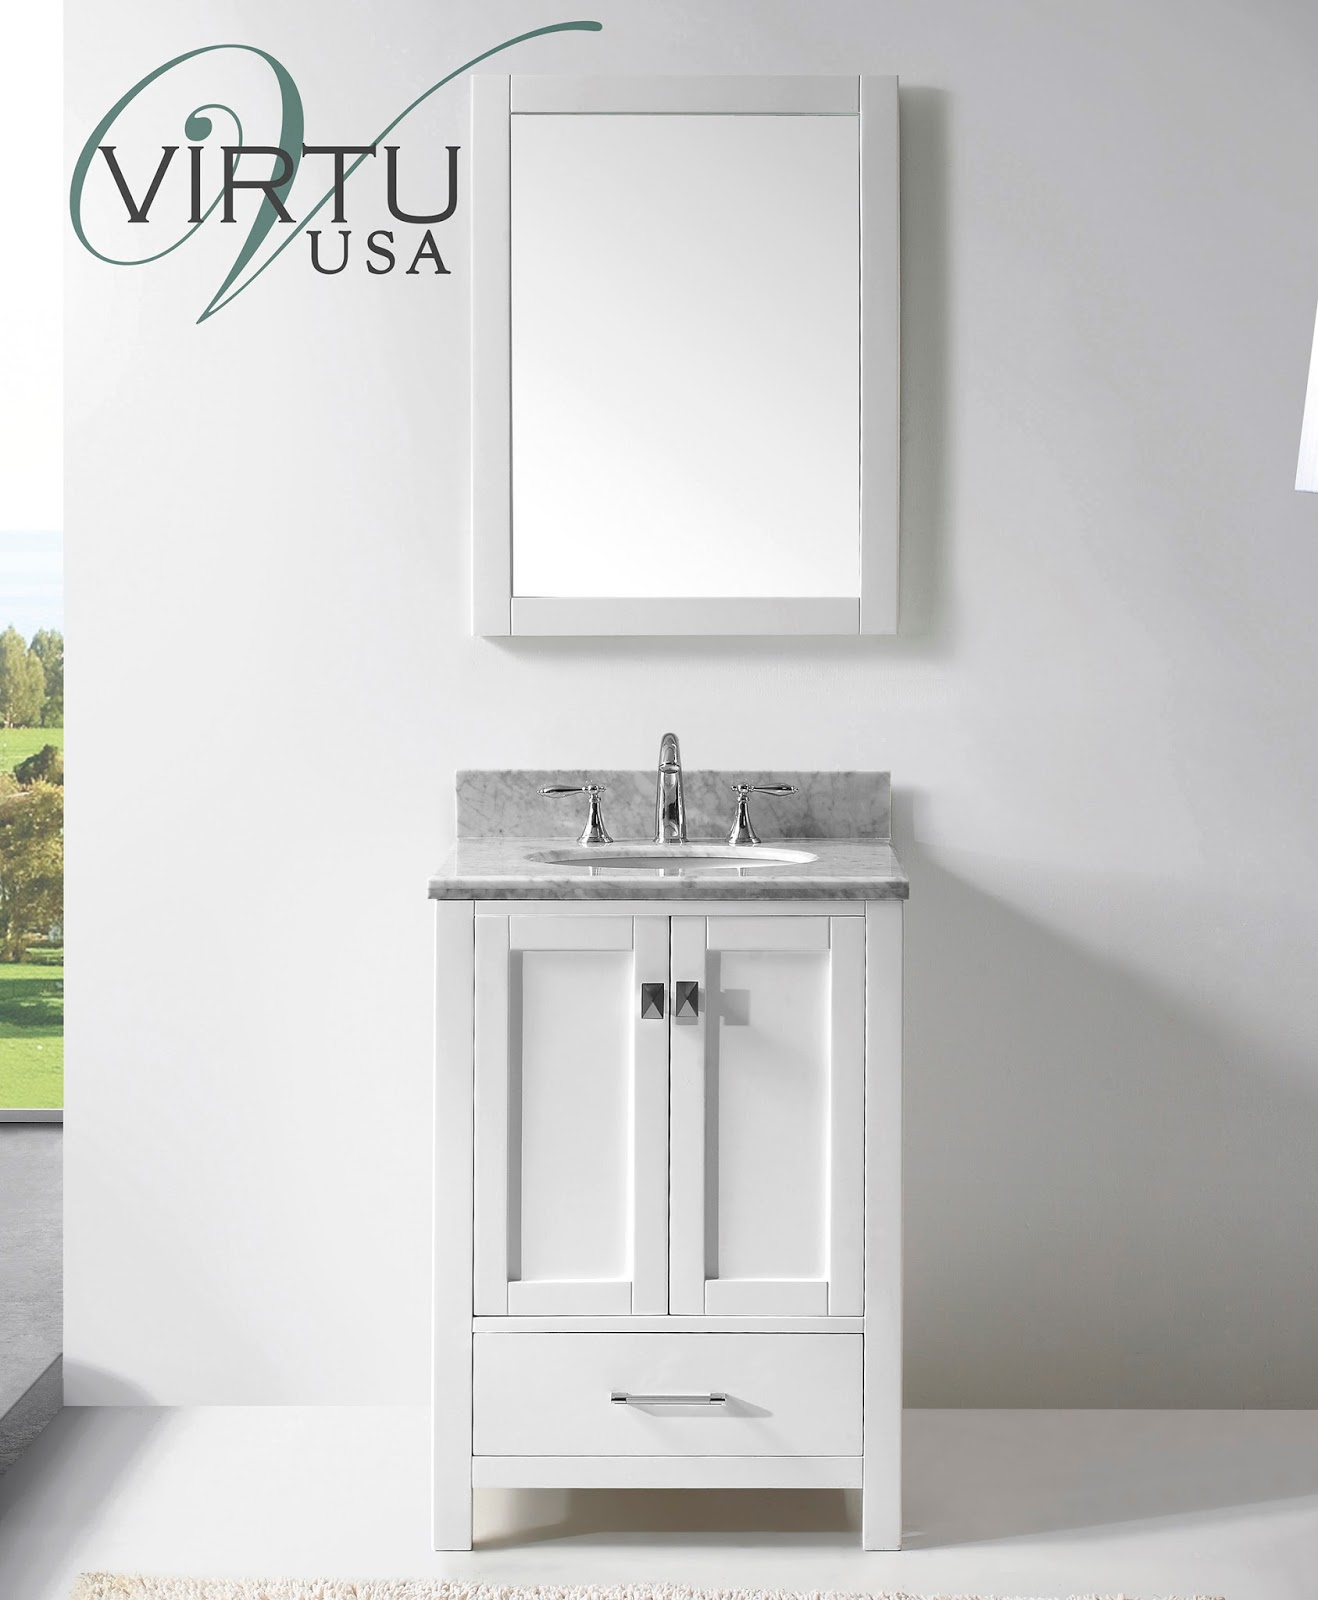 Discount Bathroom Vanities Stylish Space with a Small ...